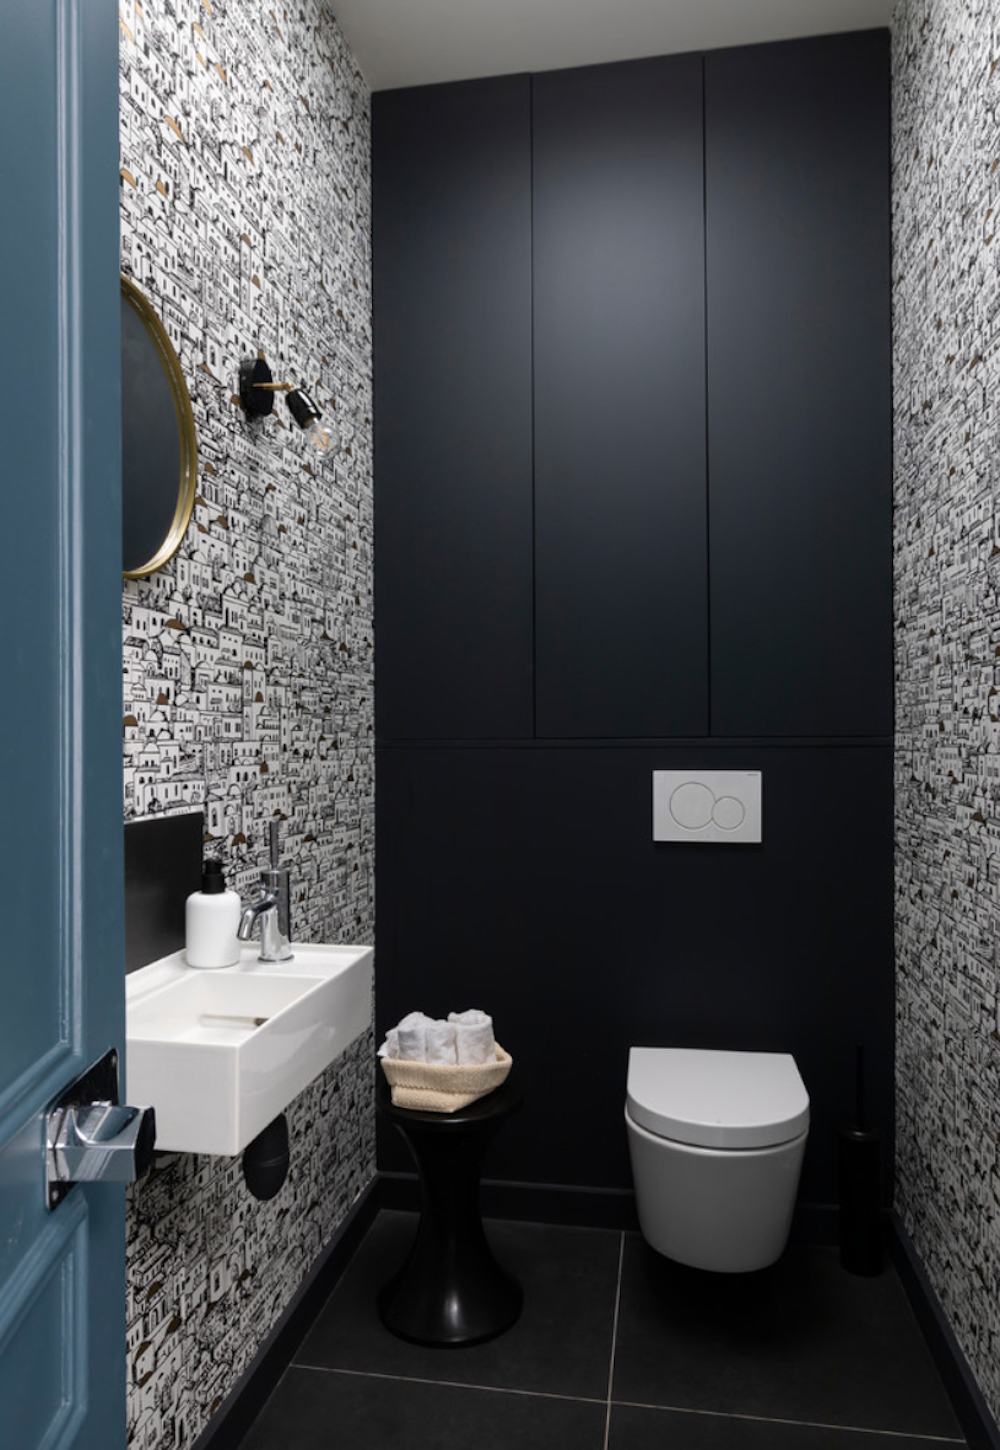 Wallpapered cloakroom with hidden storage - Archipelles || 15 small cloakrooms / powder rooms that are big on style - FIRST SENSE